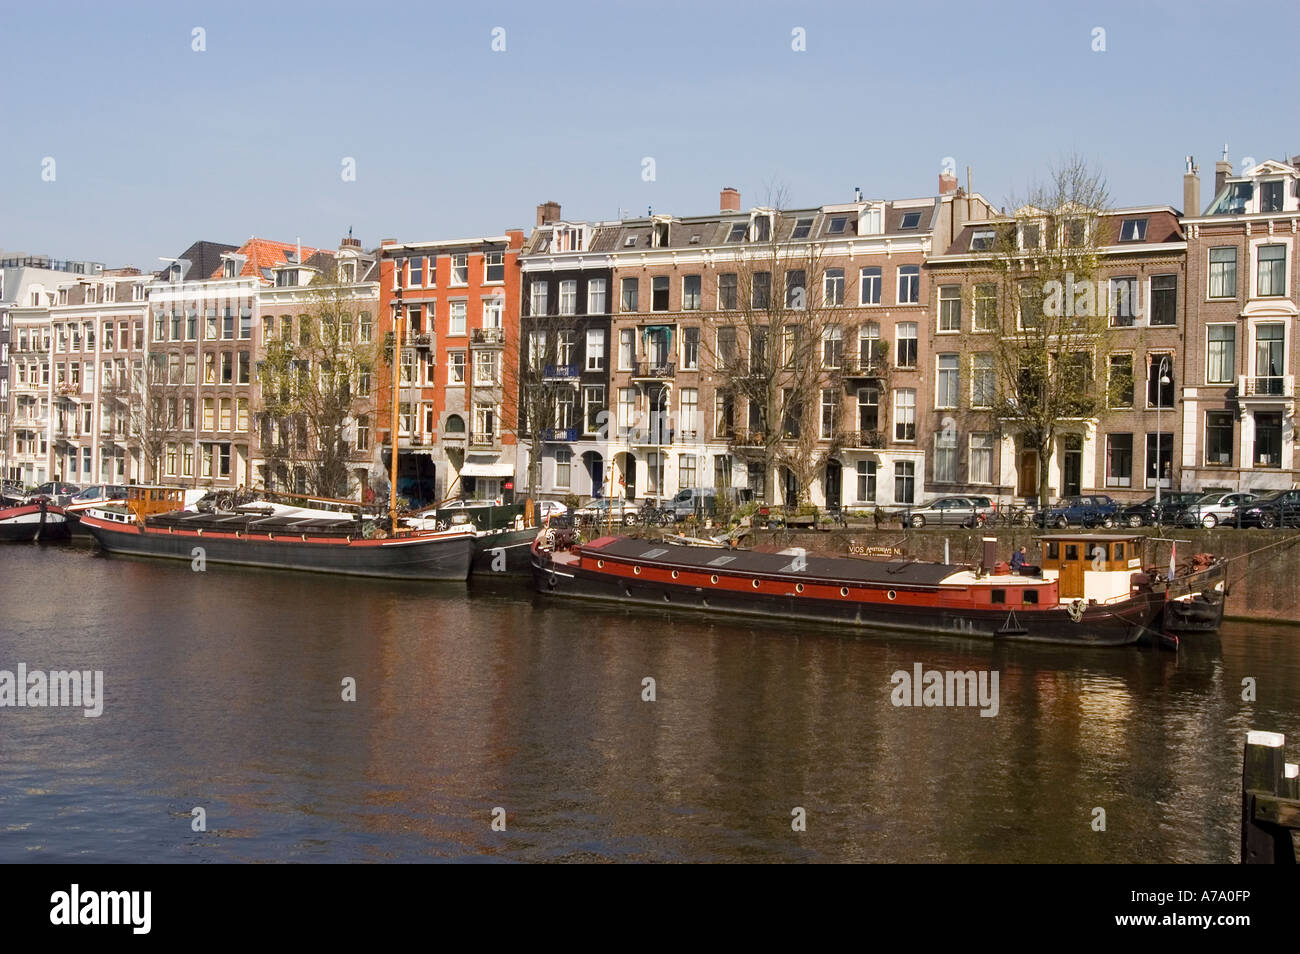 Amsterdam architecture buildings, Holland, Netherlands - Stock Image